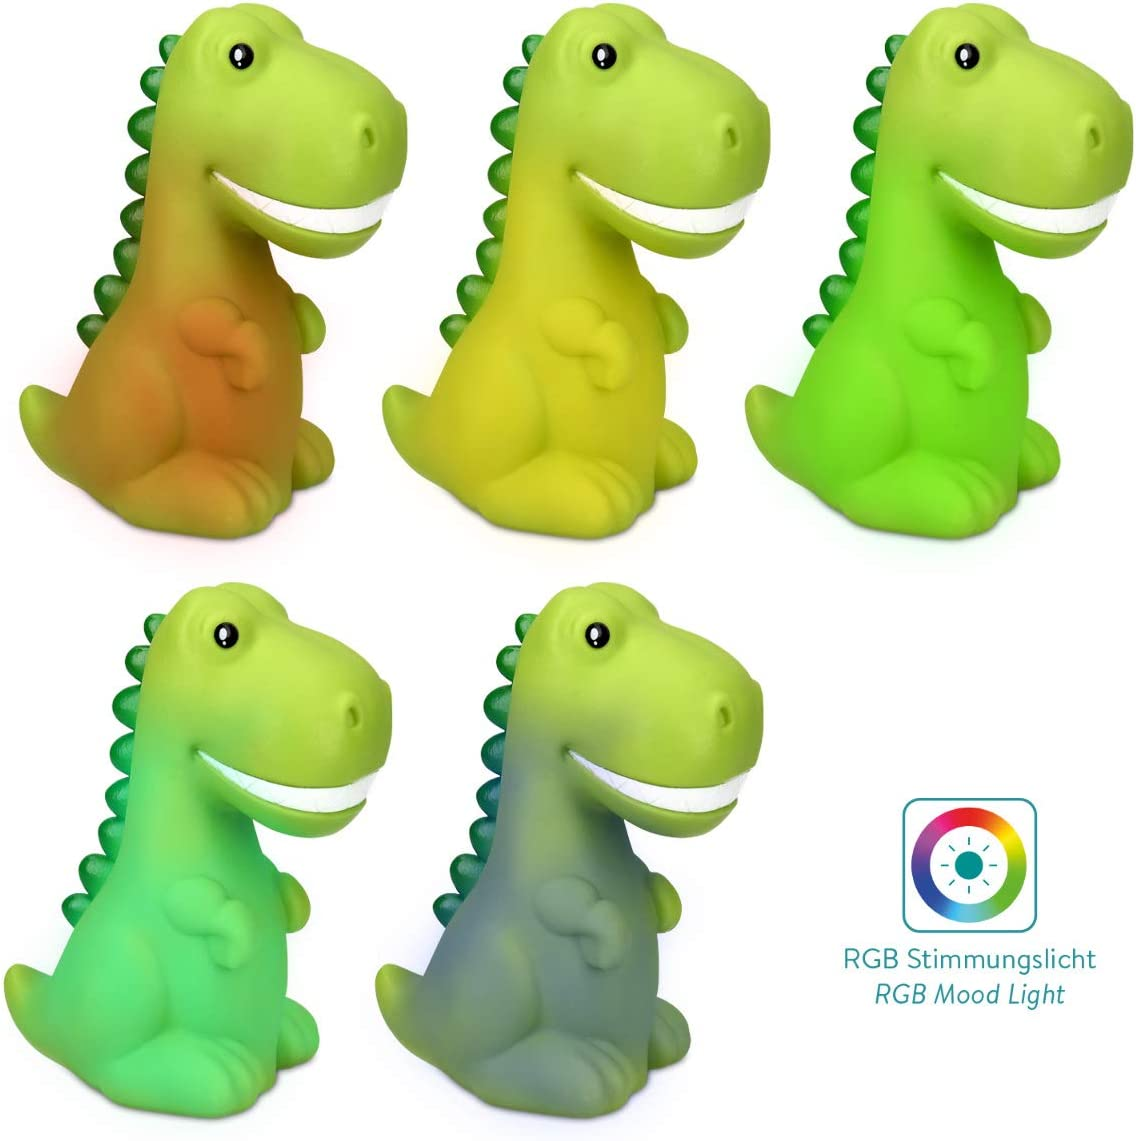 Rechargeable RGB Colour Changing LED Lamp for Girls and Boys Nursery Bedside Table Childrens Room Green Navaris Dino Night Light for Kids